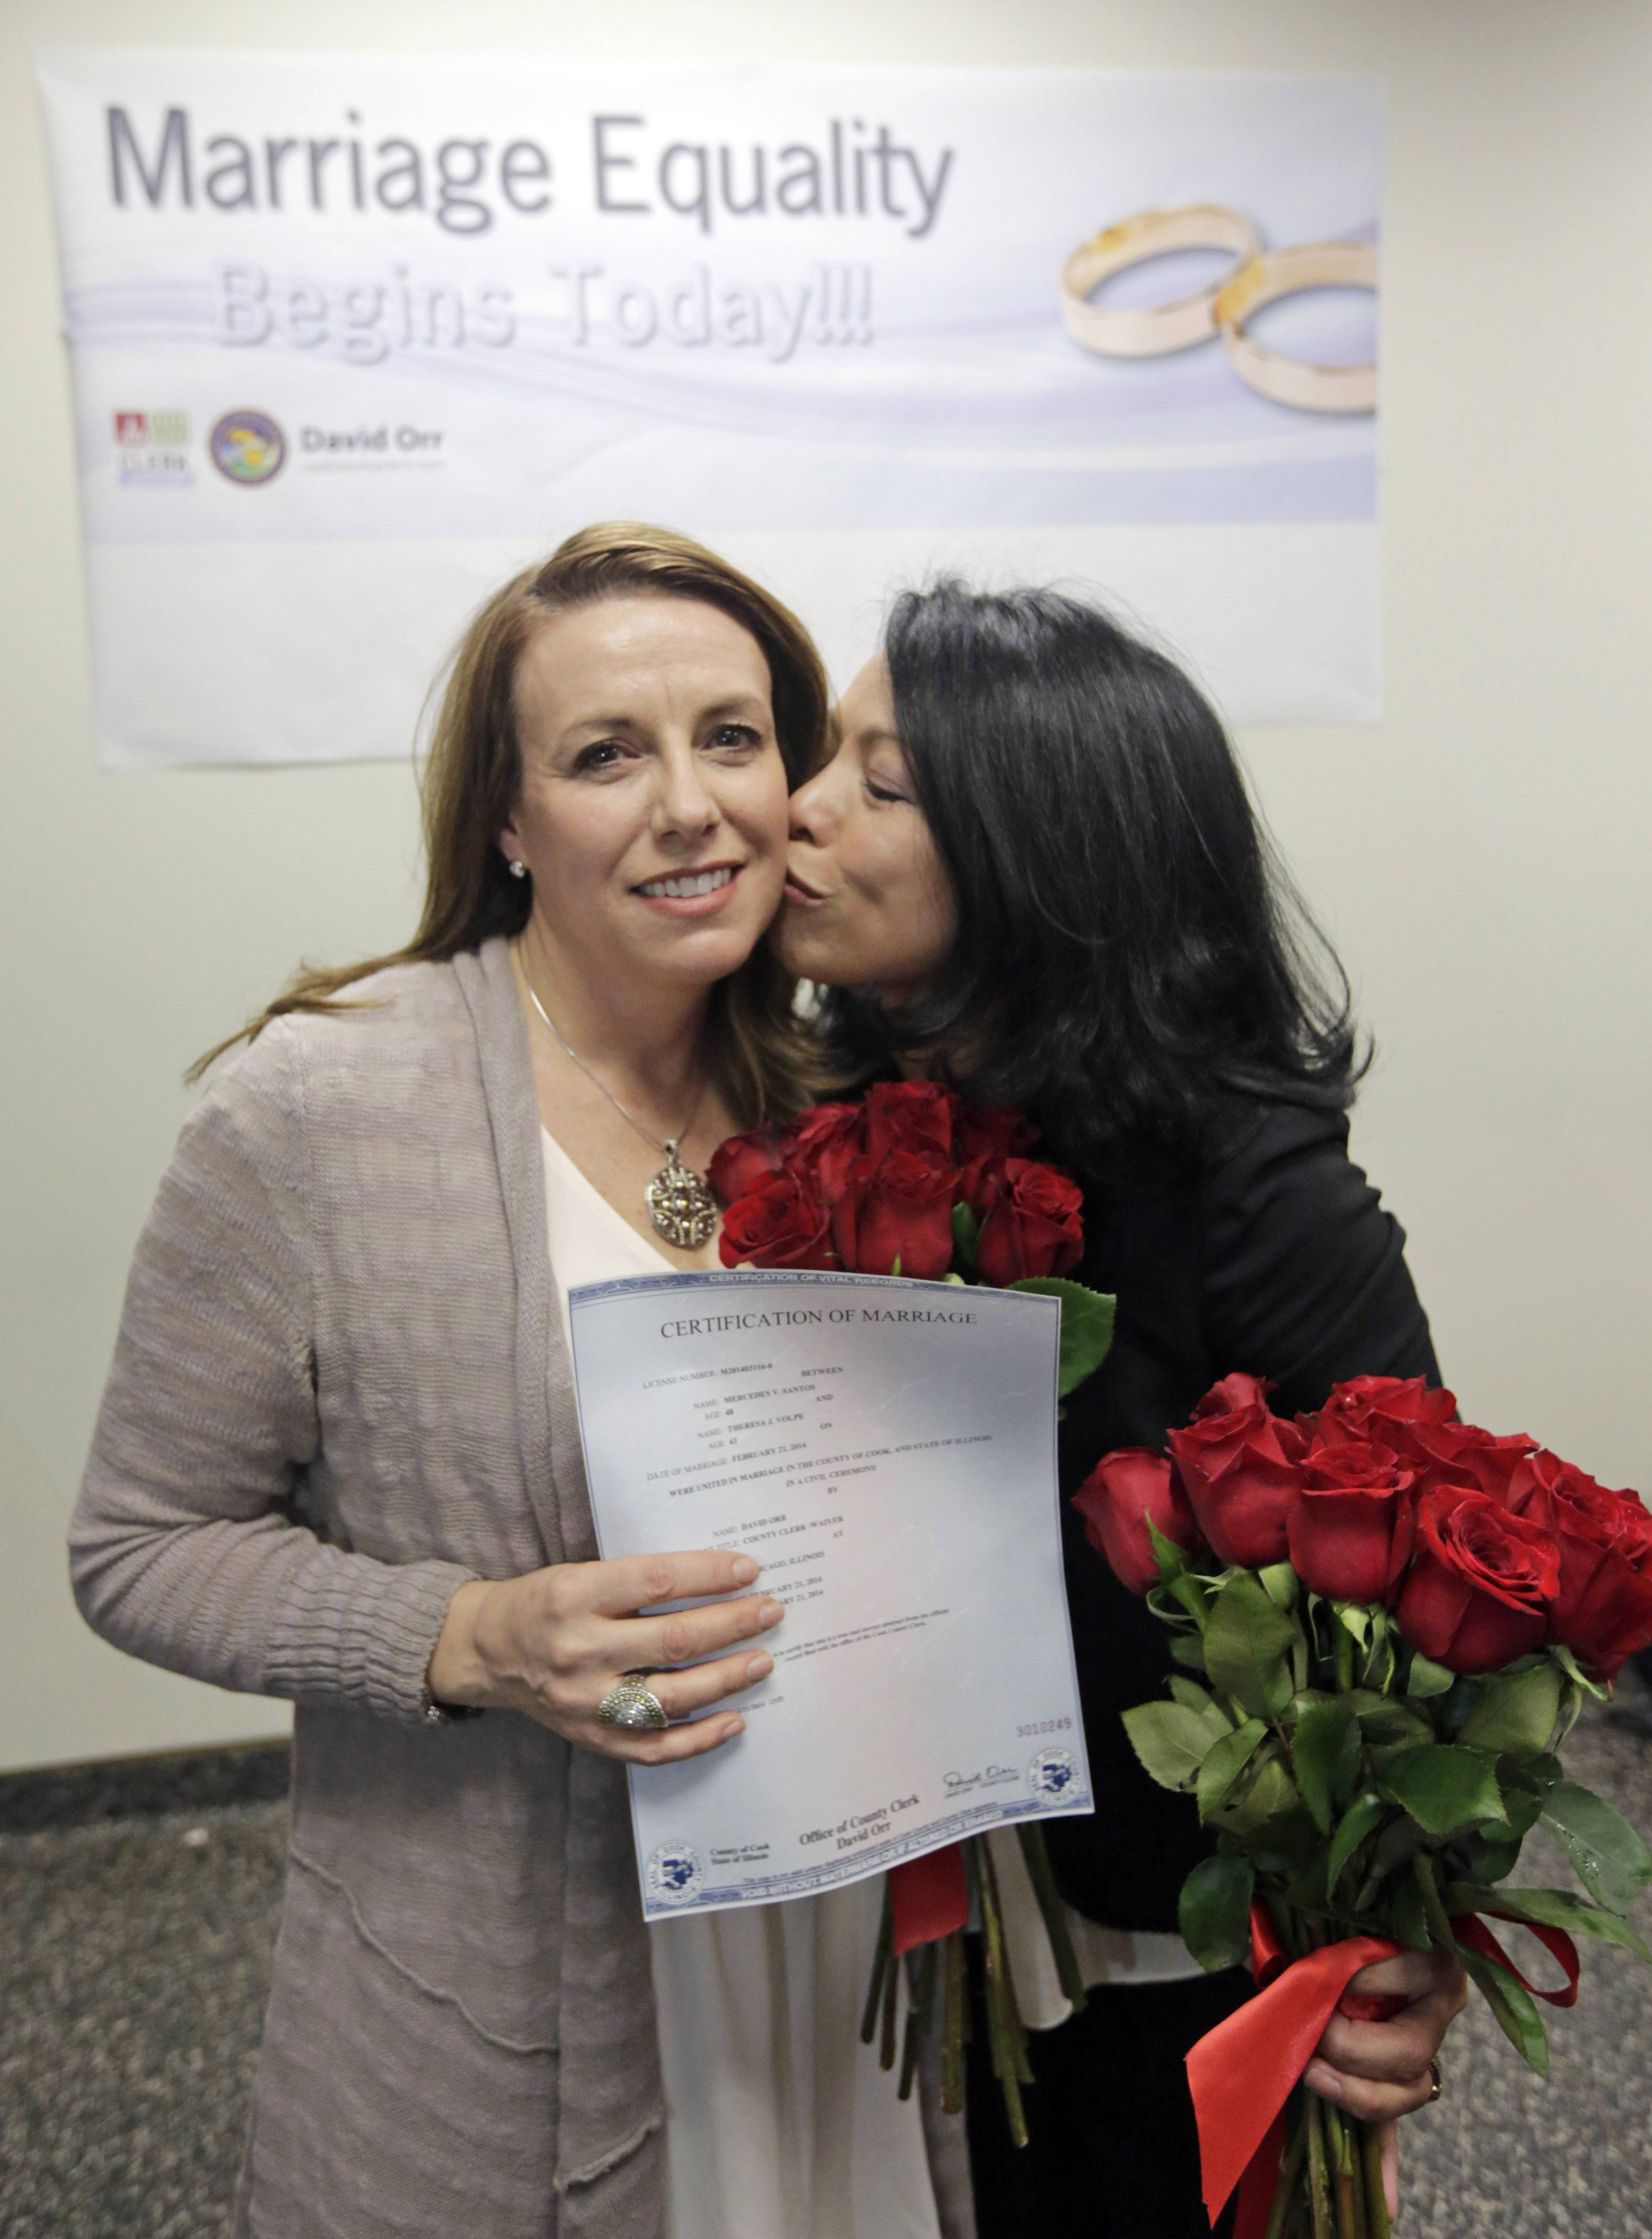 Theresa Volpe, left, and Mercedes Santos show off their Certification of Marriage after being married by Cook County Clerk David Orr on Friday.